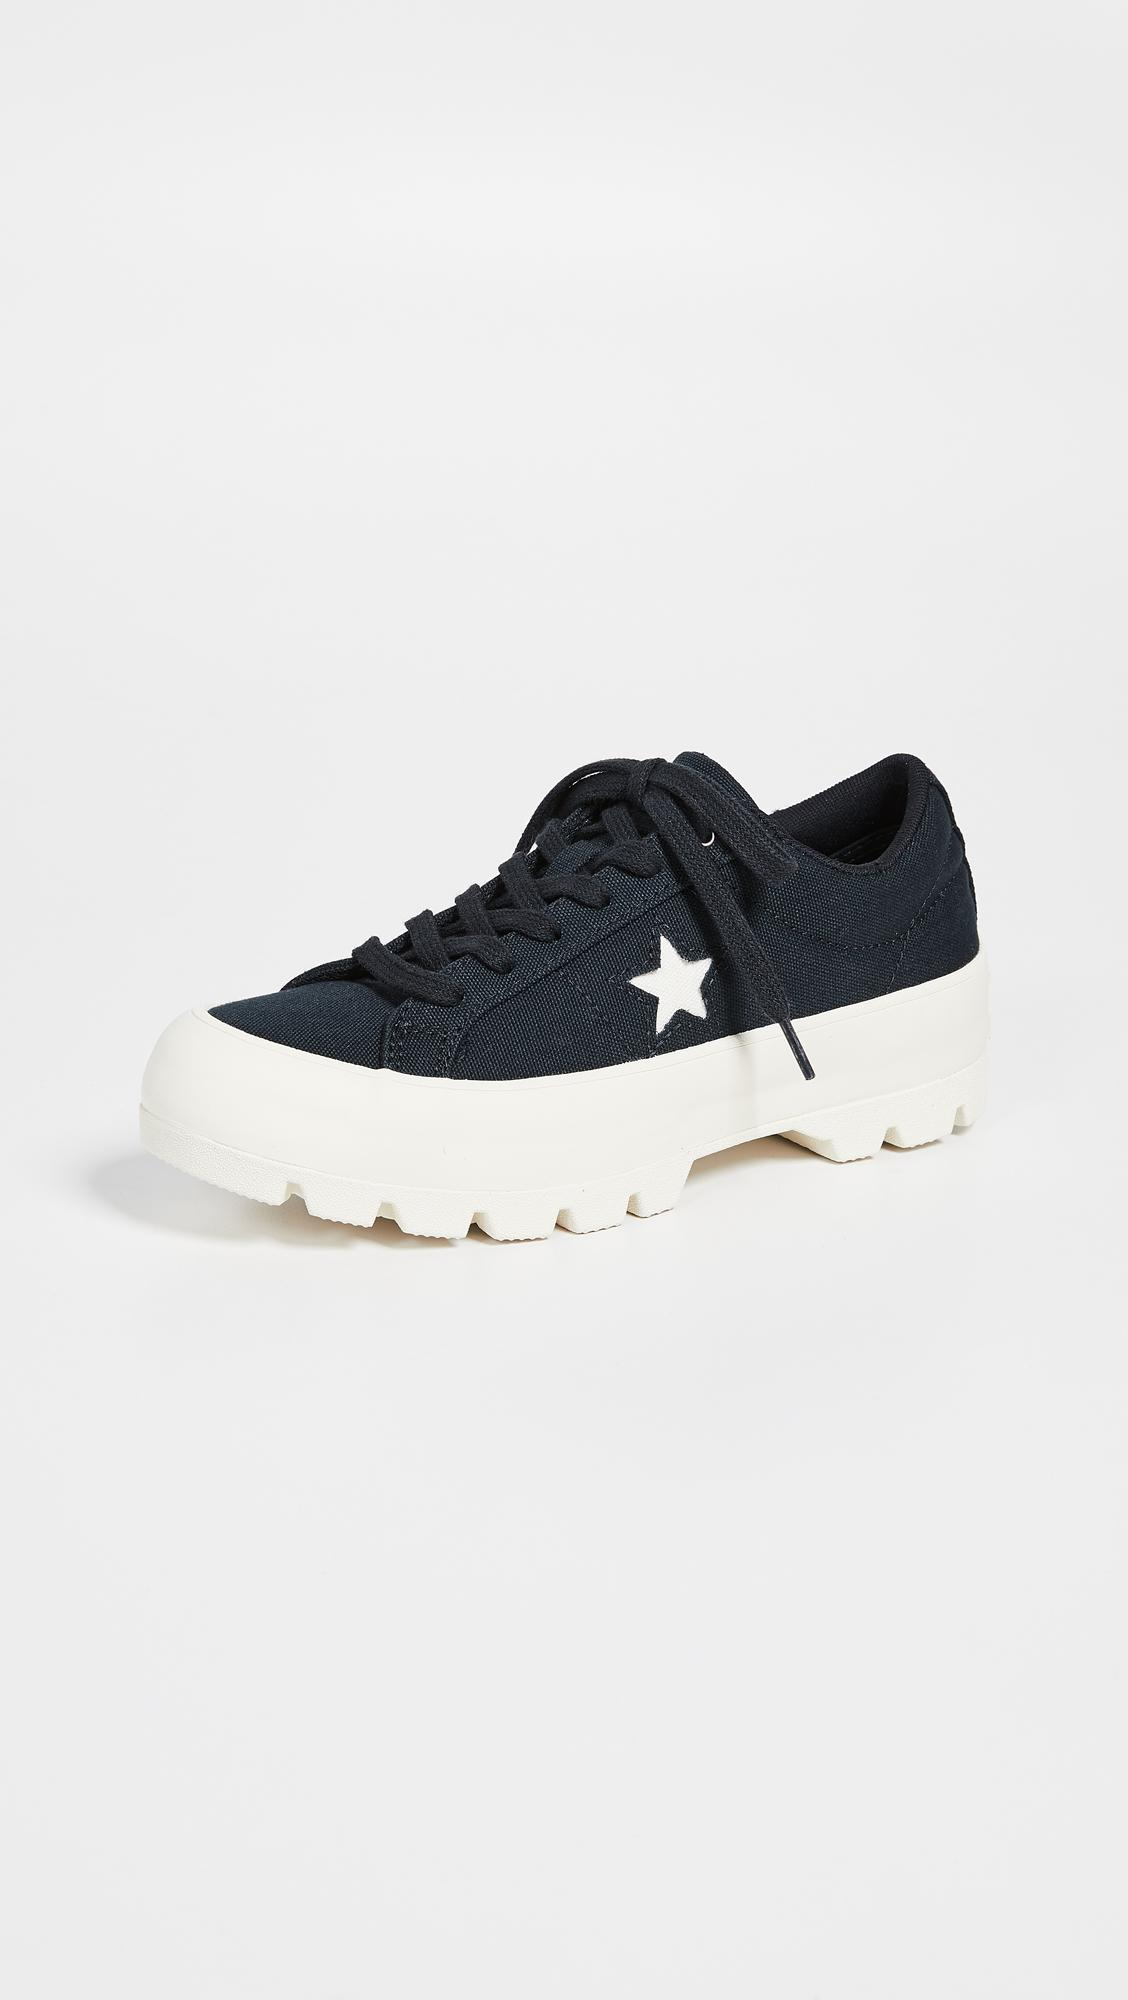 914769f4757f Converse One Star Lugged Ox Sneakers in Black - Lyst